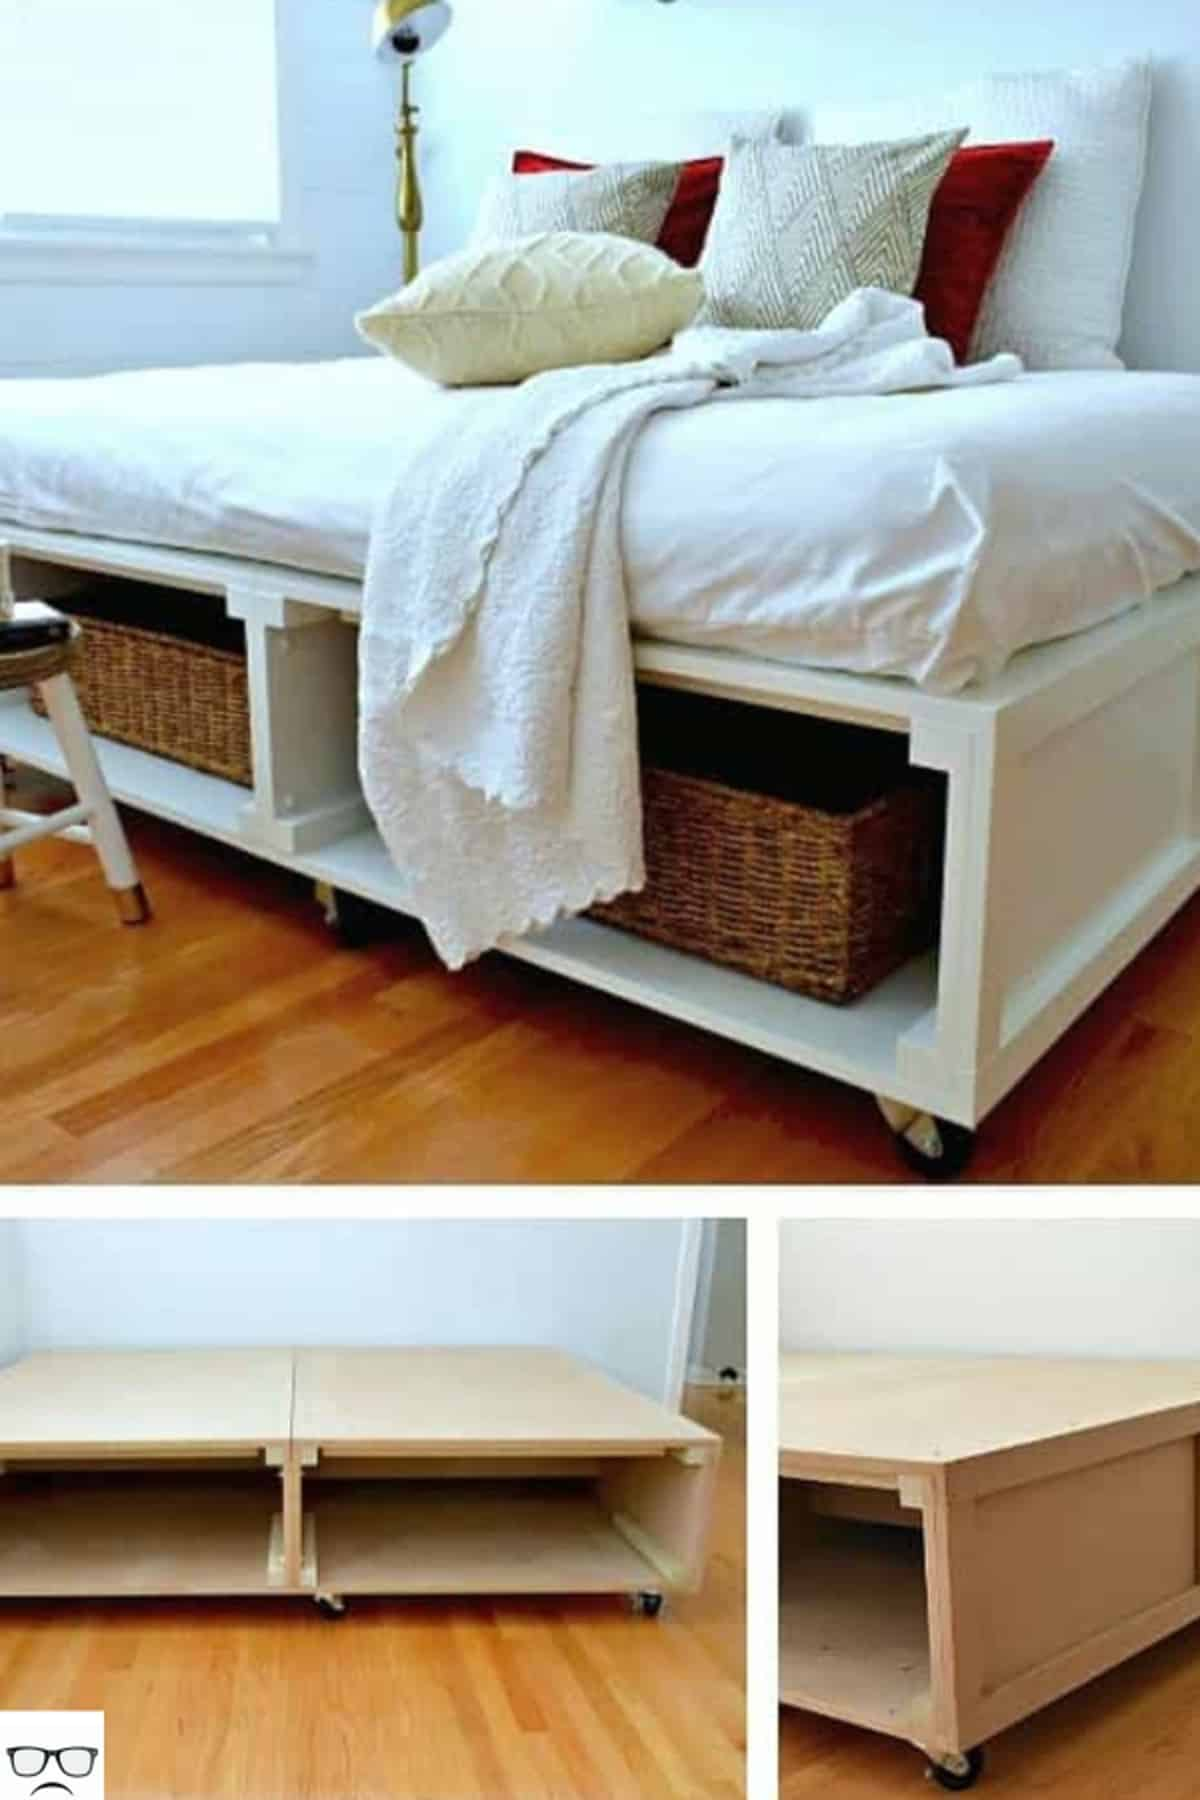 Hollow Platform Bed (No Headboard)